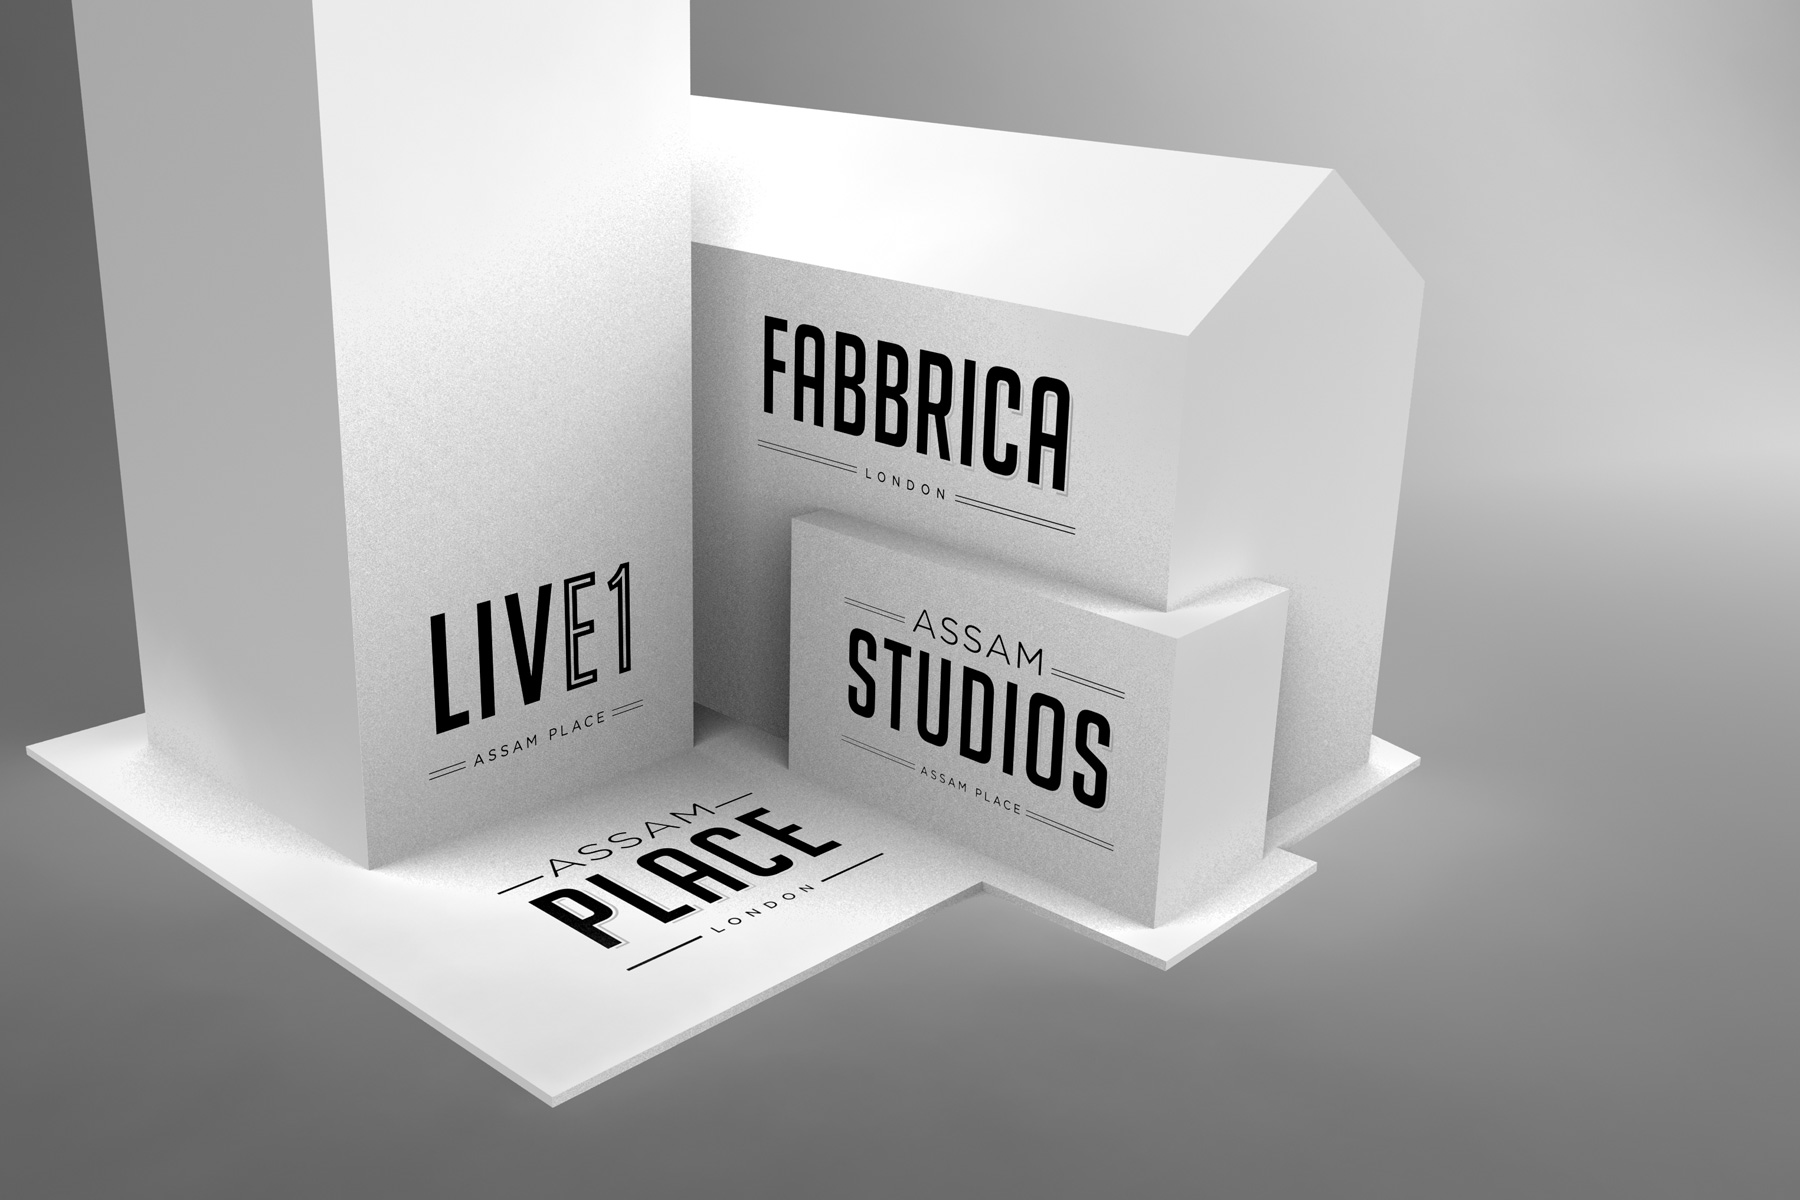 We created a series of brand identities which whilst able to work independently, also gave the development the ability to tactfully market separate propositions to varying audiences.